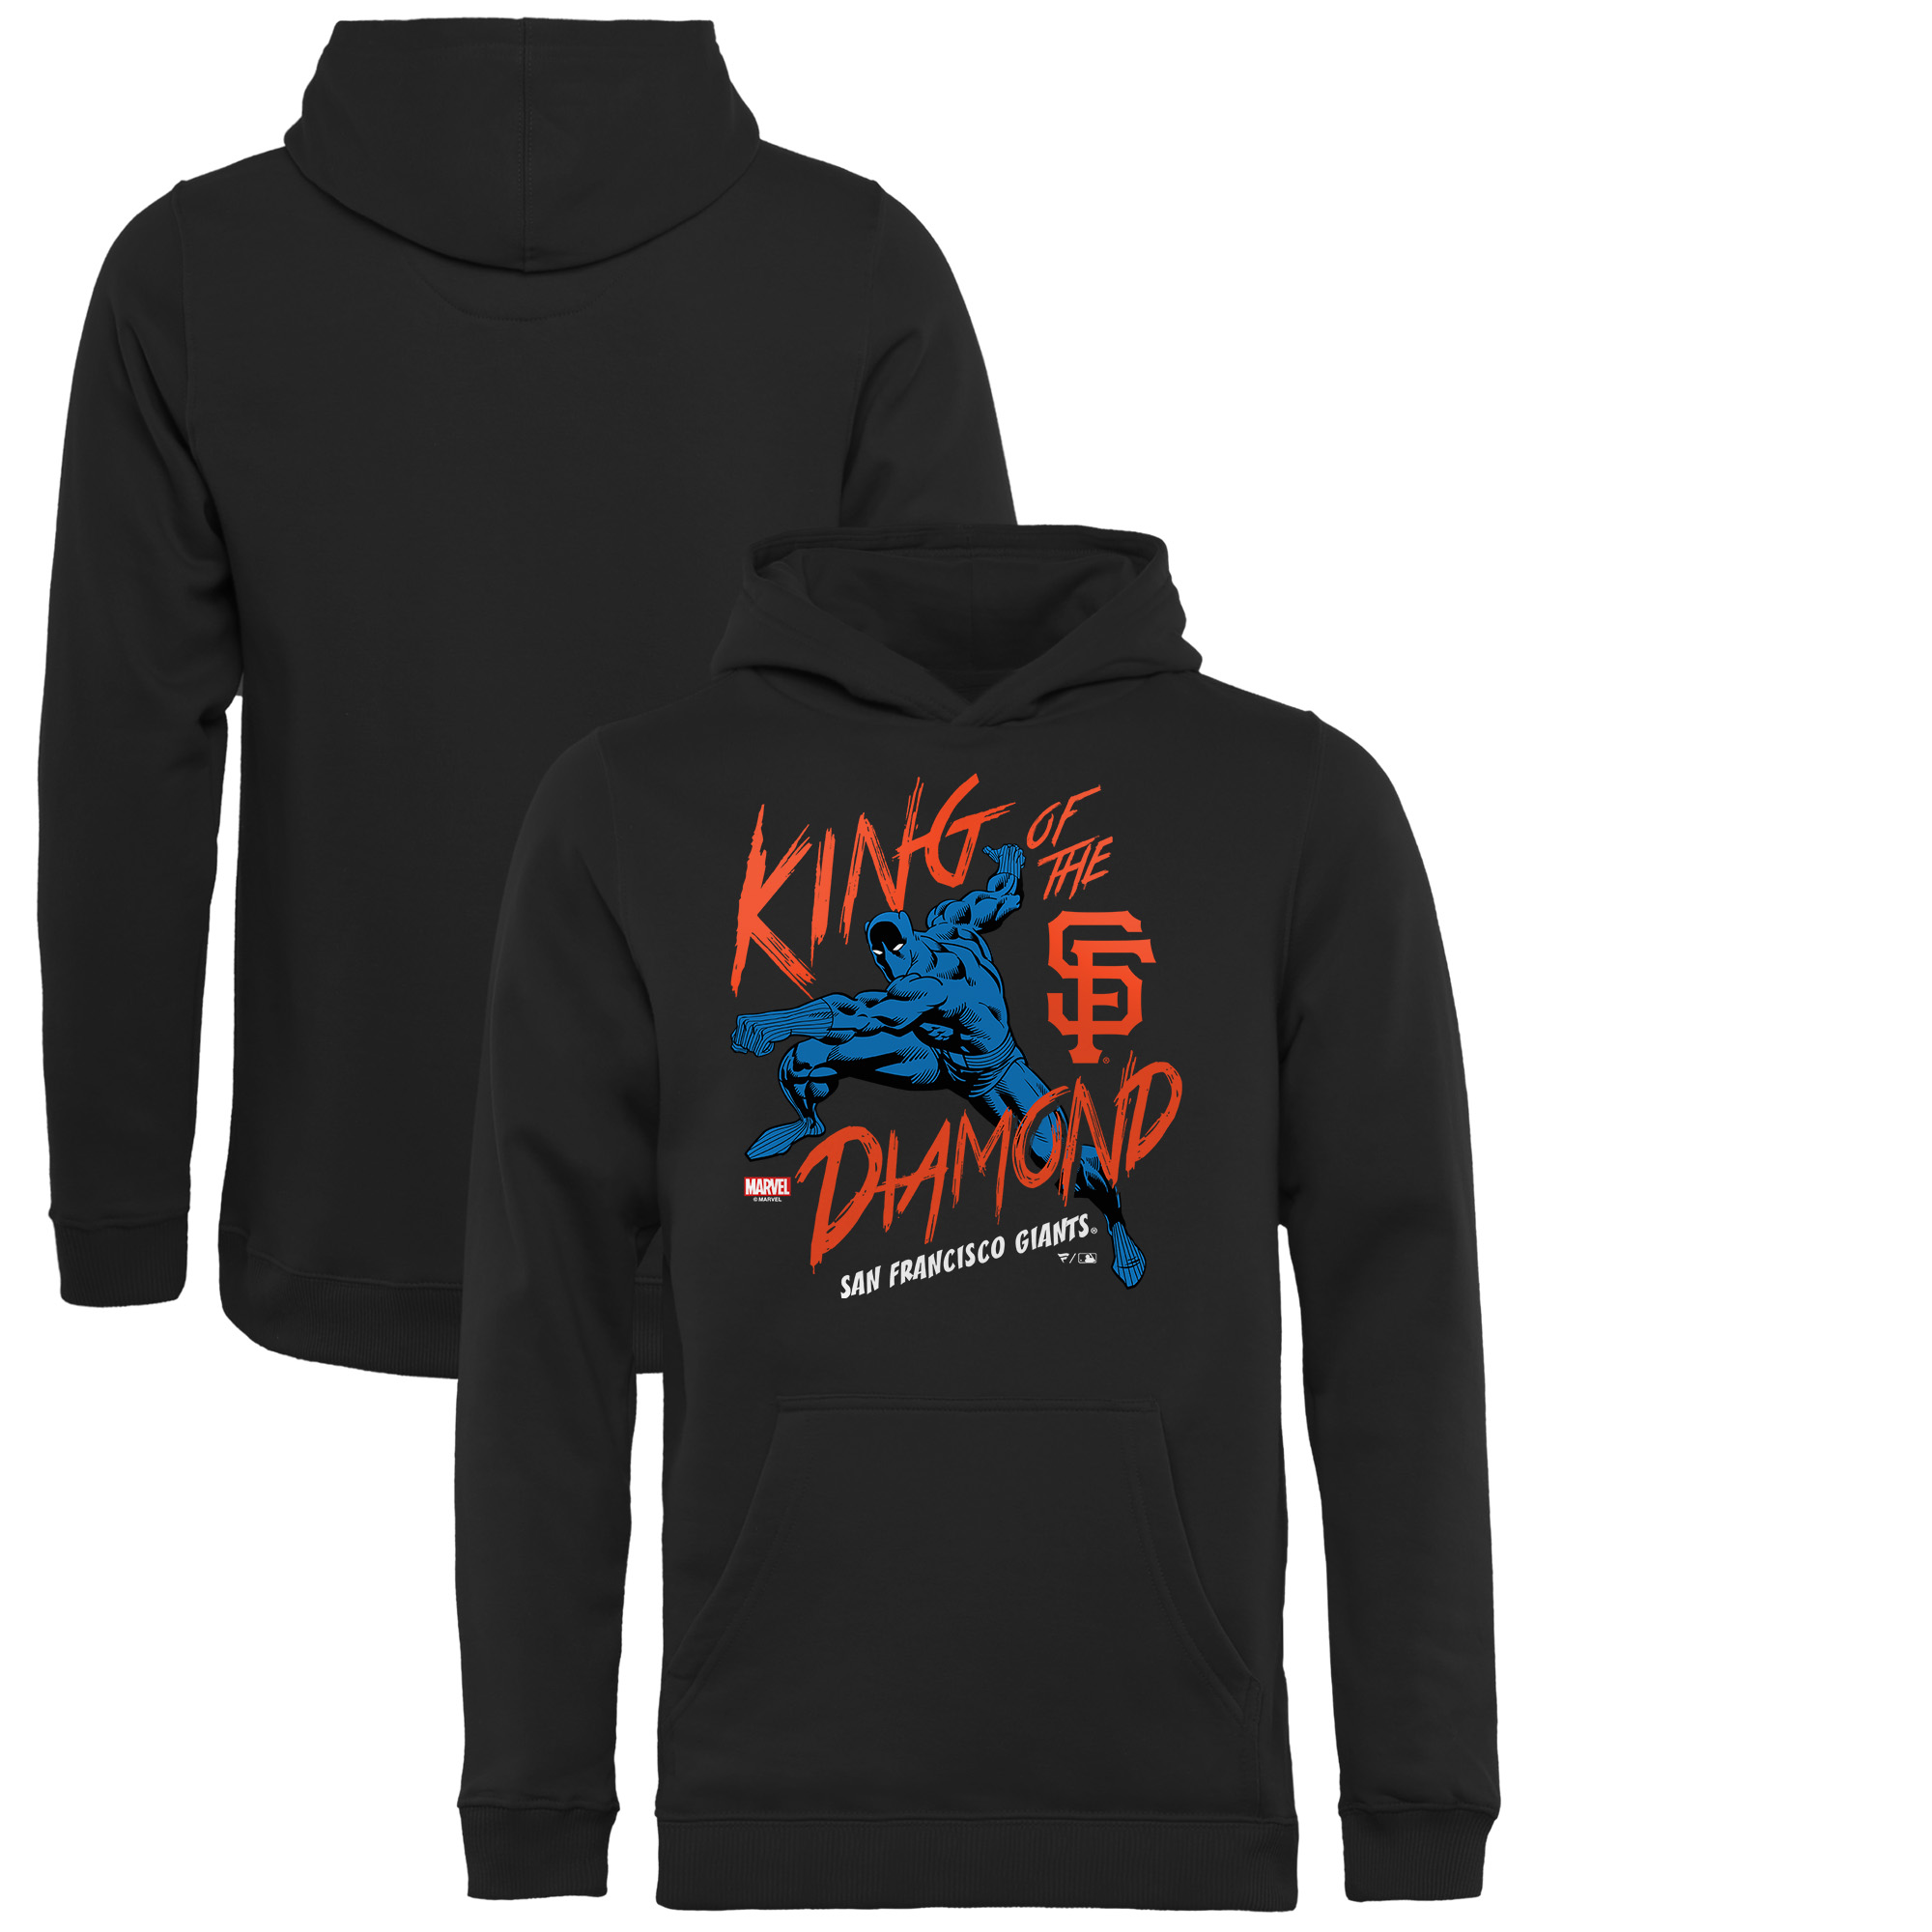 San Francisco Giants Fanatics Branded Youth MLB Marvel Black Panther King of the Diamond Pullover Hoodie - Black